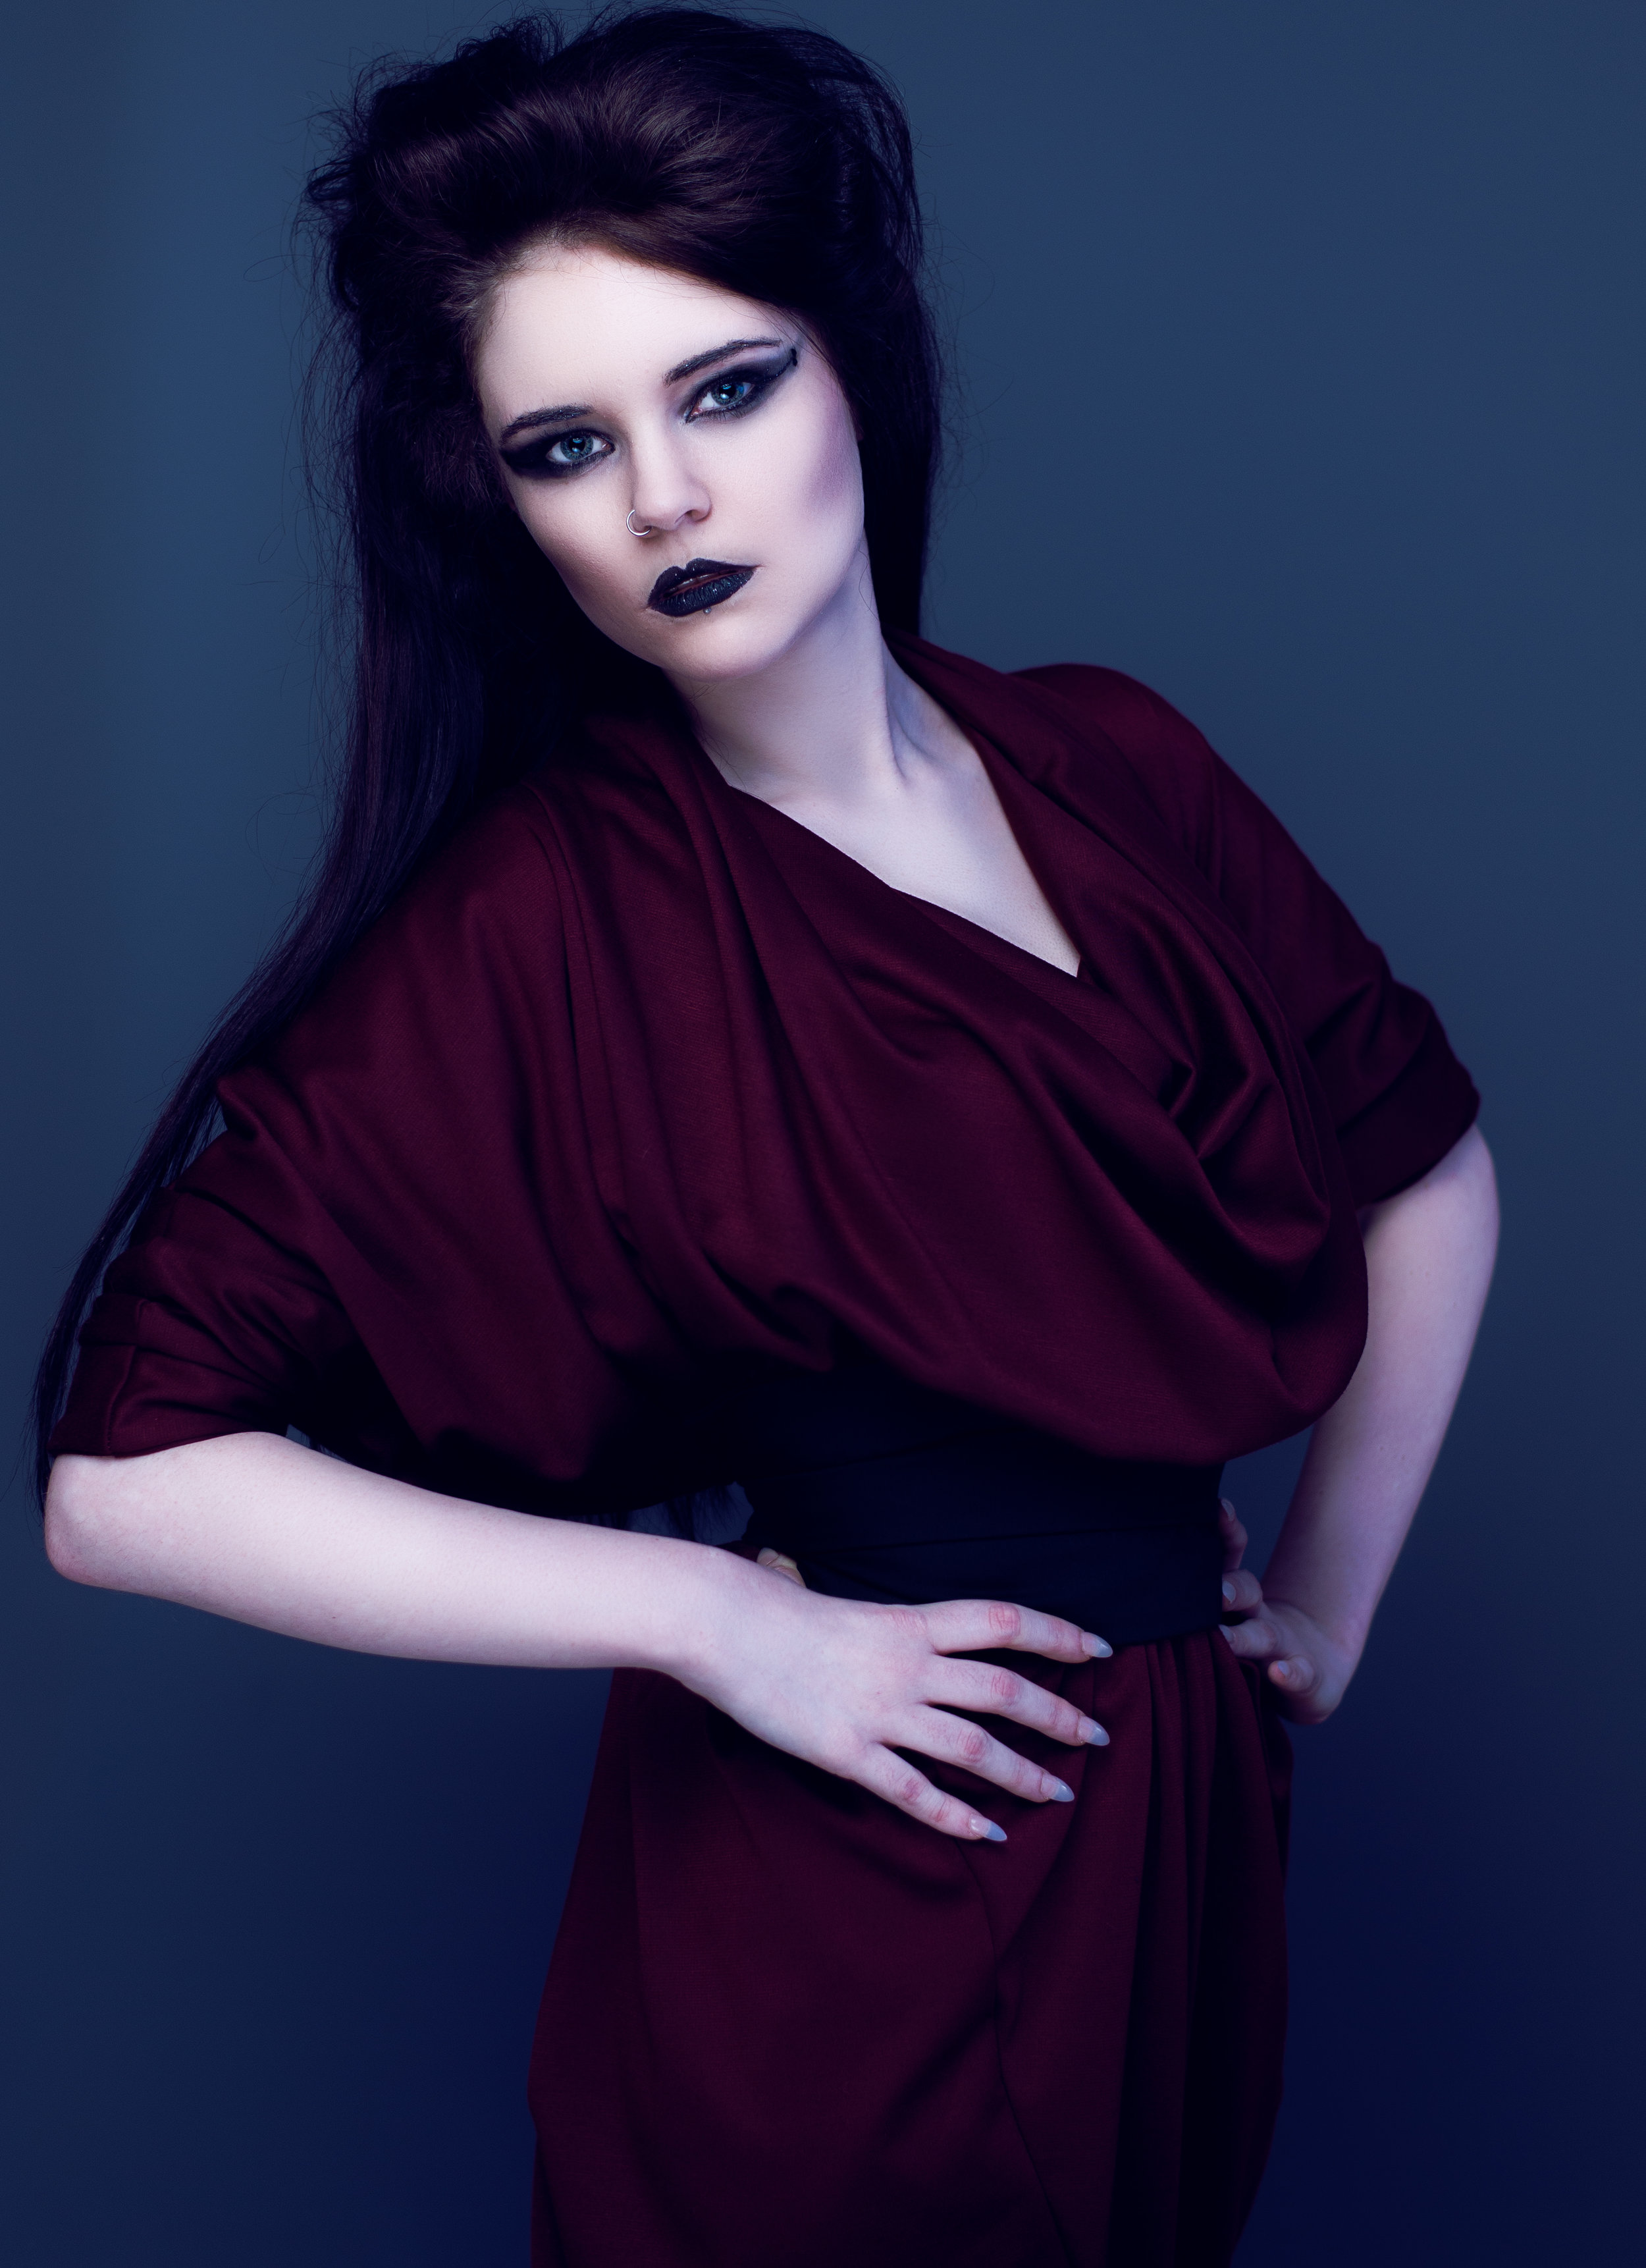 zaramia-ava-zaramiaava-leeds-fashion-designer-ethical-sustainable-tailored-minimalist-aya-burgundy-black-obi-belt-dress-versatile-drape-cowl-styling-studio-womenswear-models-photoshoot-vibrant-15